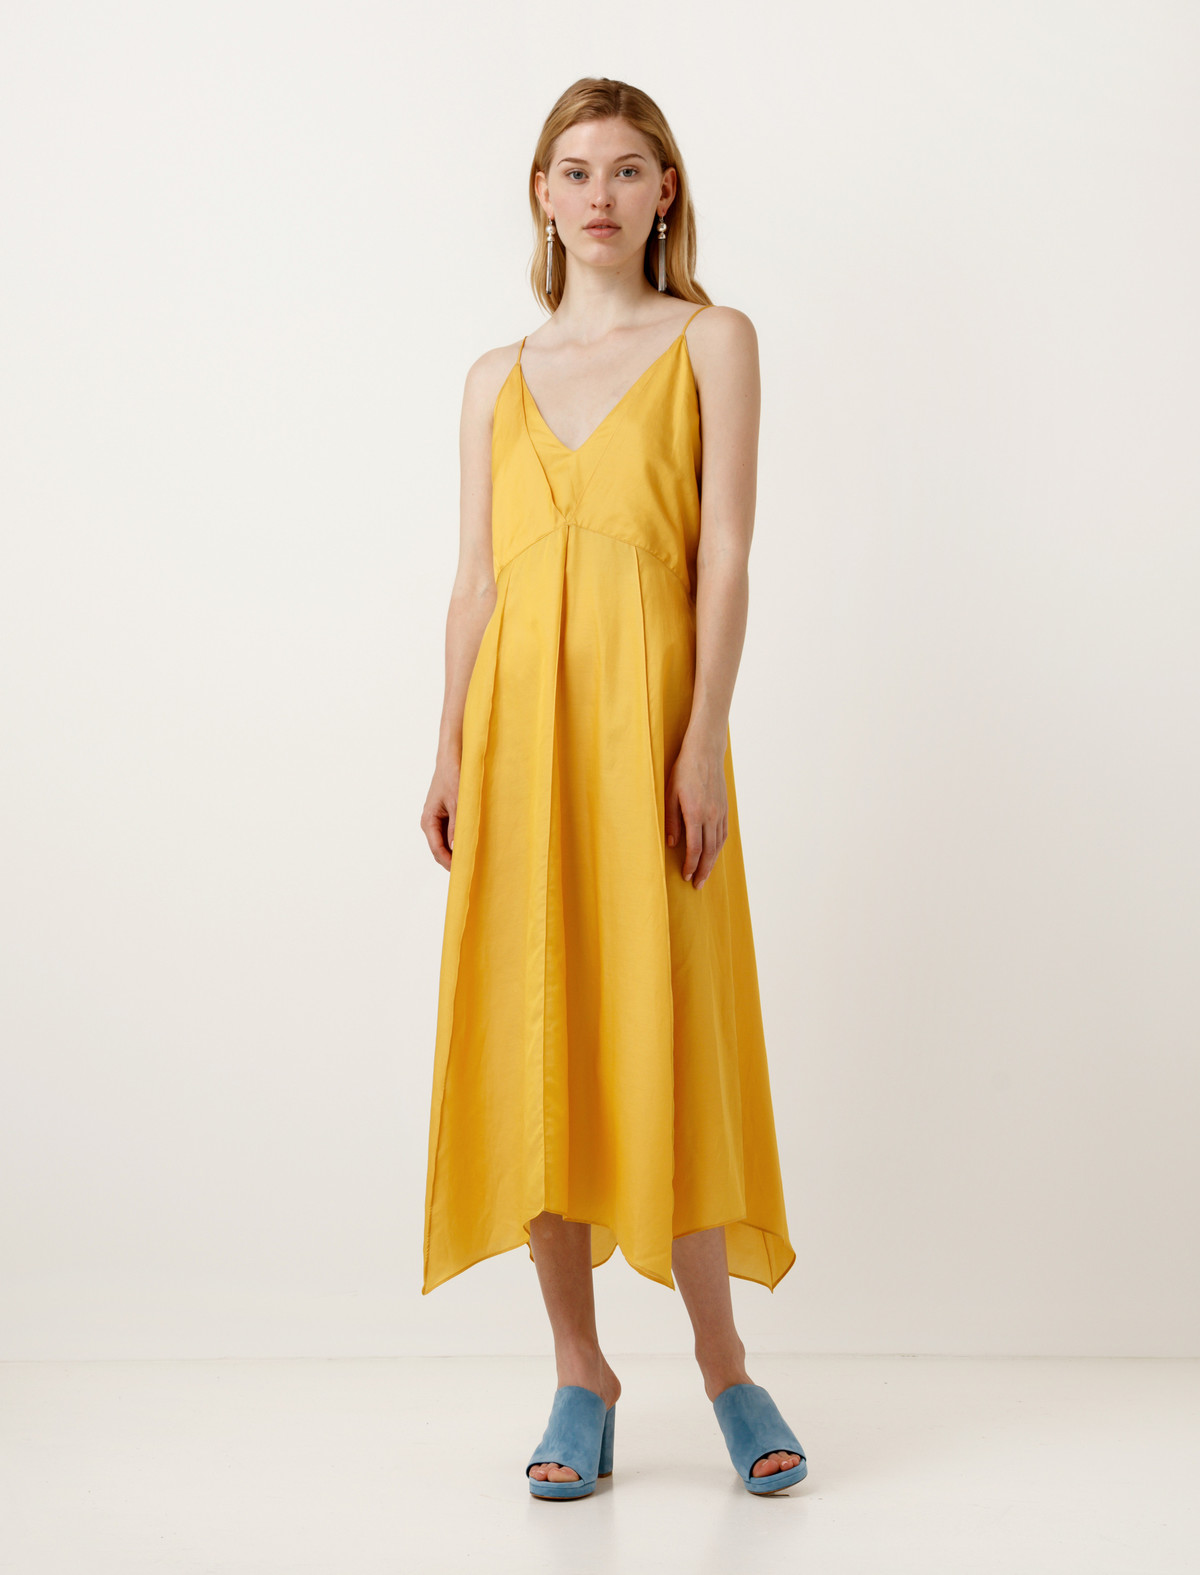 Lemaire Lingerie Dress Canary Yellow | Garmentory